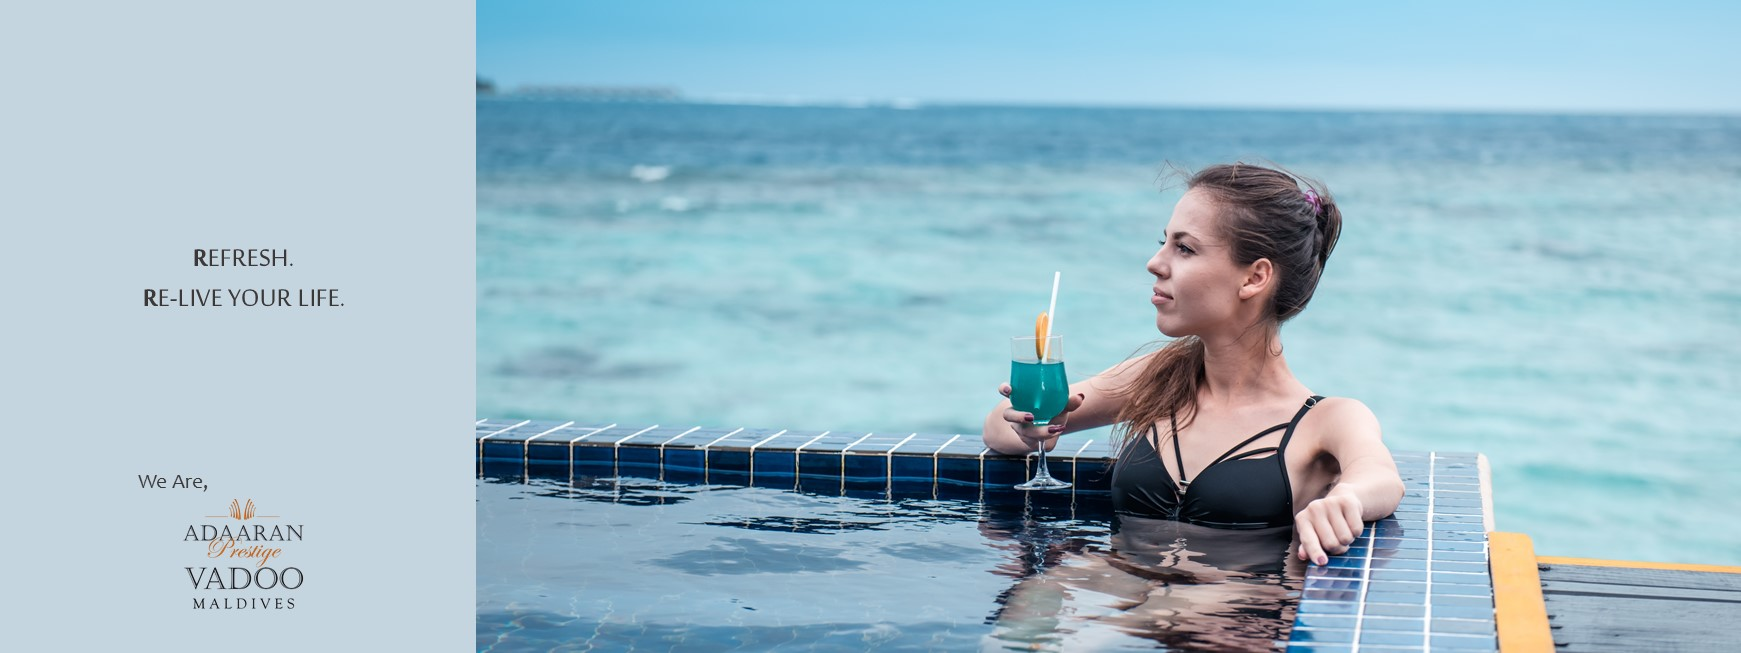 Maldives Luxury Resorts | Adaaran Prestige Vadoo Official Site on maldives map india, ayada maldives on map, seychelles resorts map, reunion resorts map, maldives world map, maldives location on map, honolulu resorts map, male maldives map, maldives map google, maldives airport map, turks and caicos islands resorts map, honduras resorts map, bermuda resorts map, maldives climate map, lankanfushi maldives map, falkland islands resorts map, the maldives map, maldives indian ocean map, tahiti resorts map, palawan resorts map,